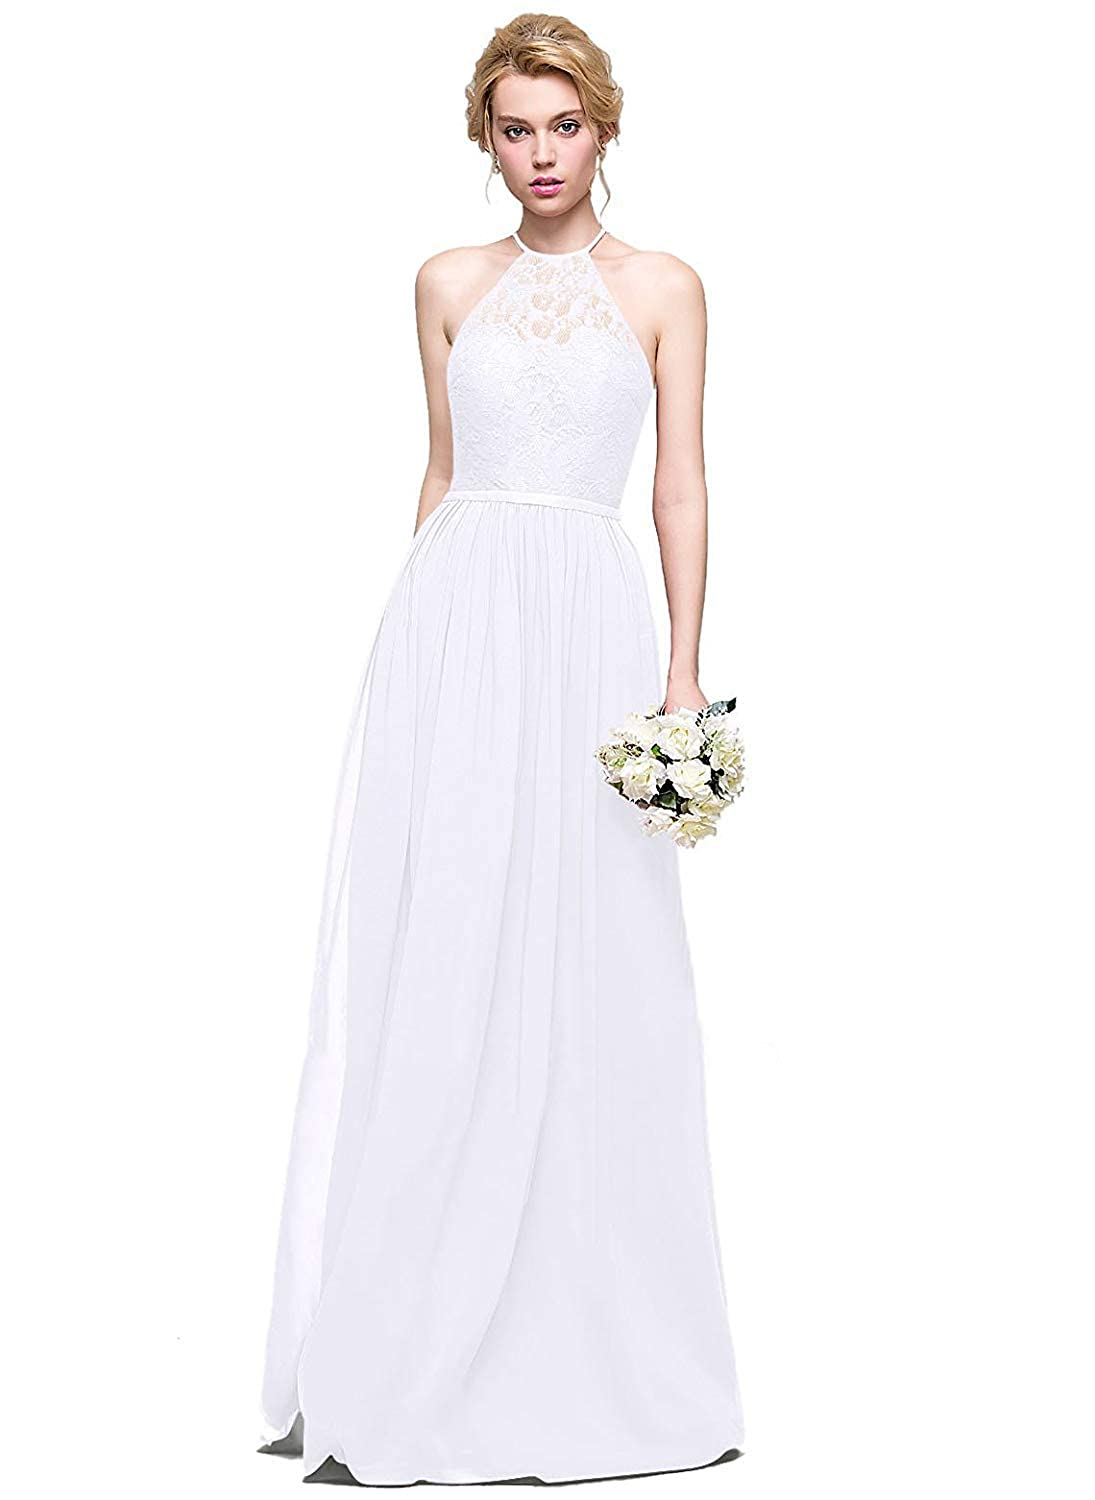 White Halter Lace Sweetheart Neck Bridesmaid Dresses Long Prom Evening Gown